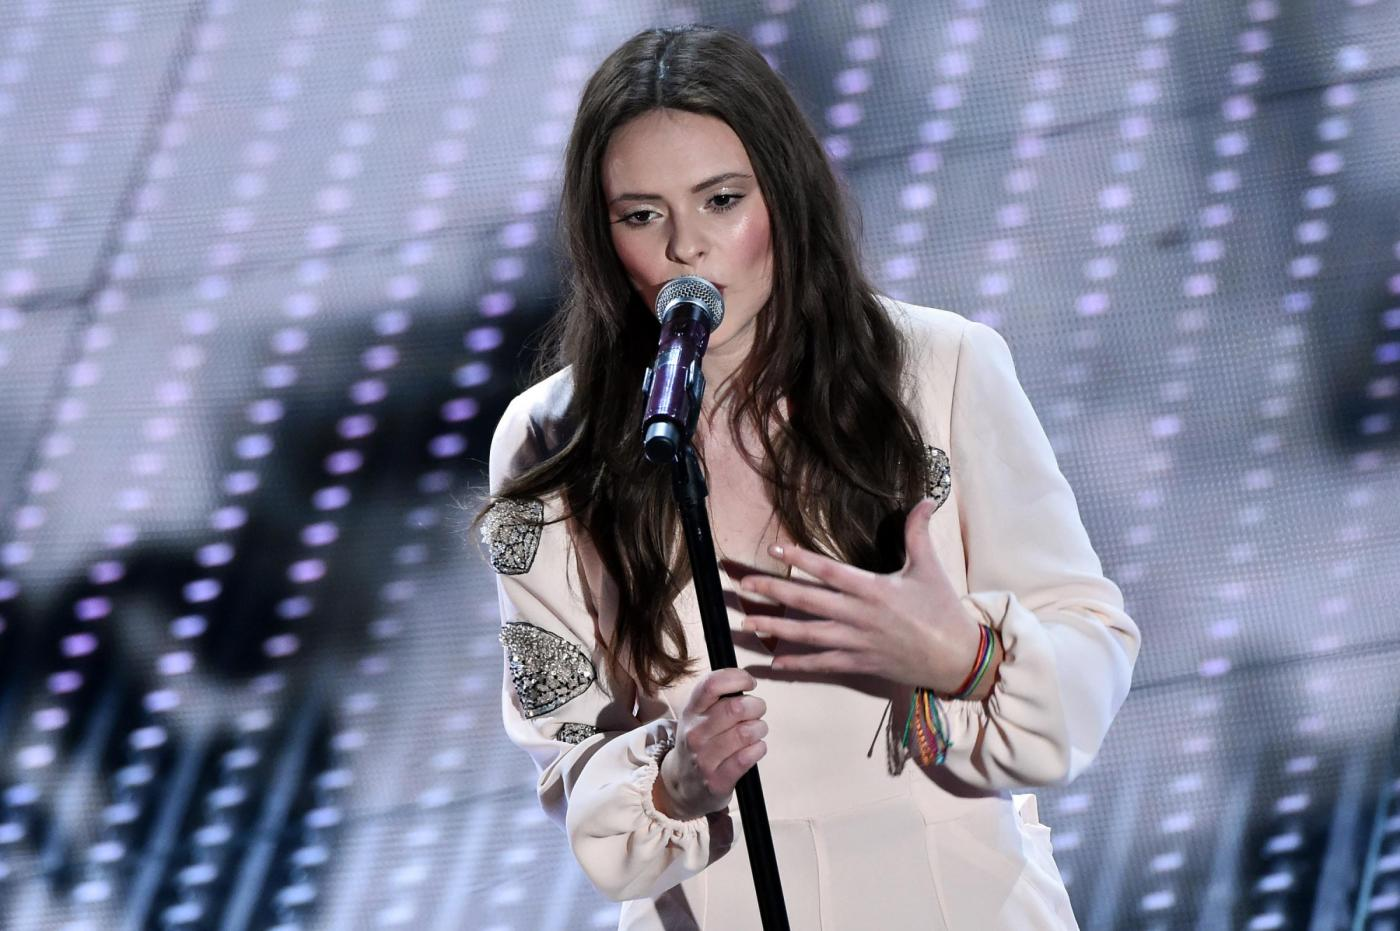 Francesca Michielin all'Eurovision Song Contest 2016 al posto degli Stadio